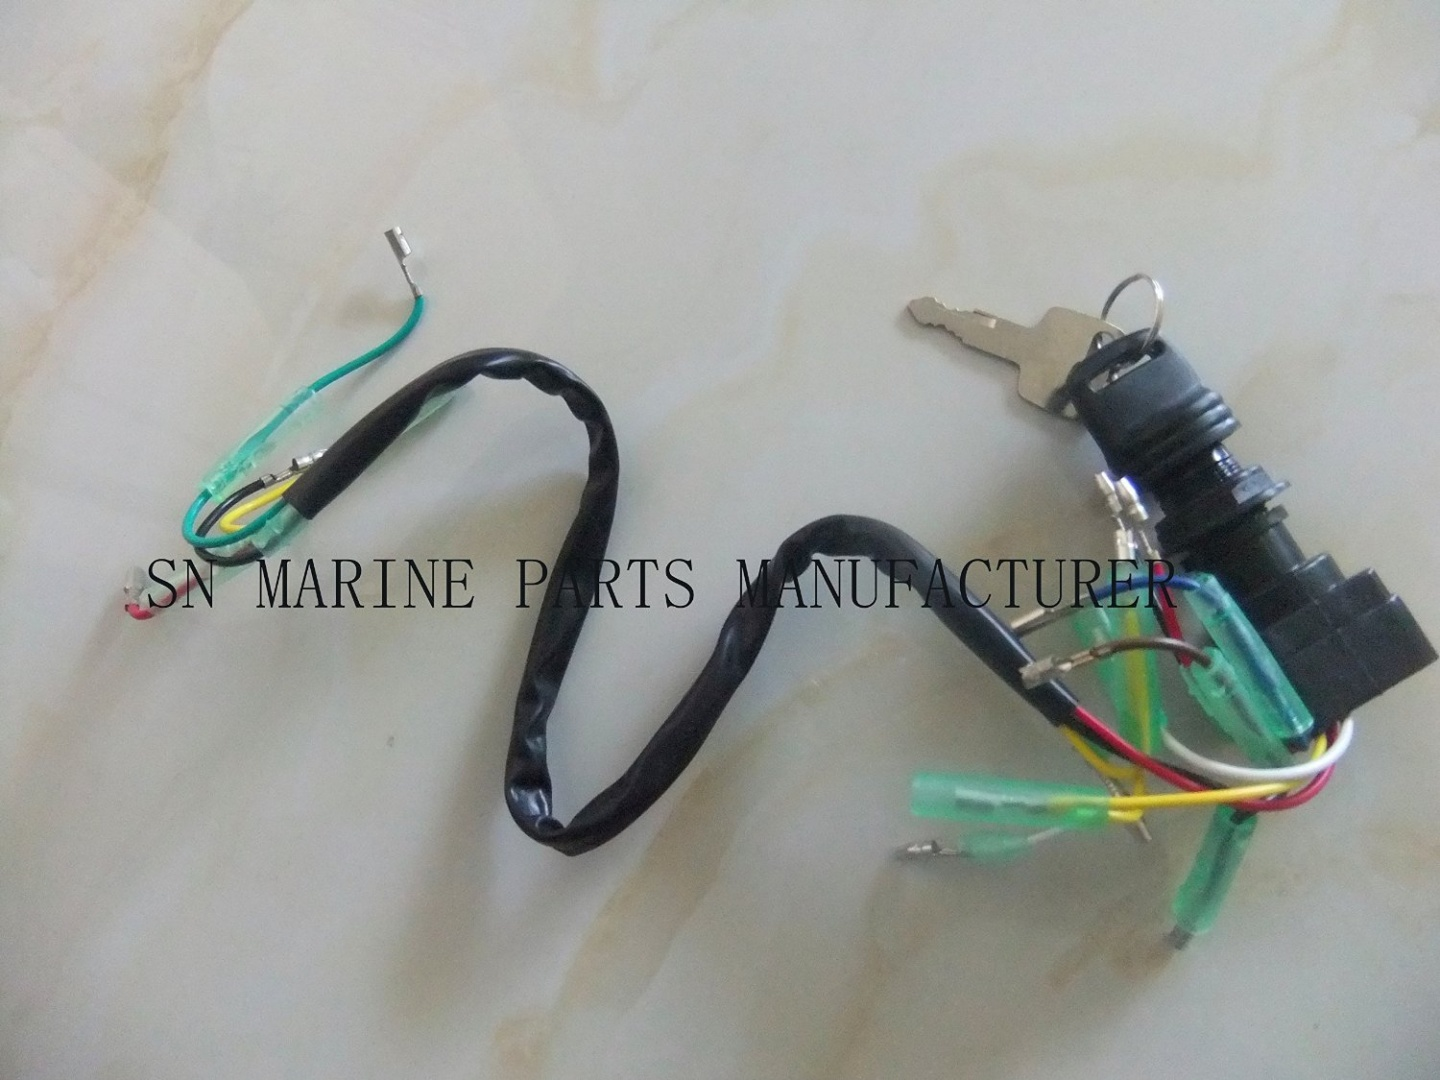 Remote Control Box Ignition Switch / Main Switch Assy 703-82510-43-00 for  Yamaha Outboard Motors 703-82510-42-00 Push to Choke 10P